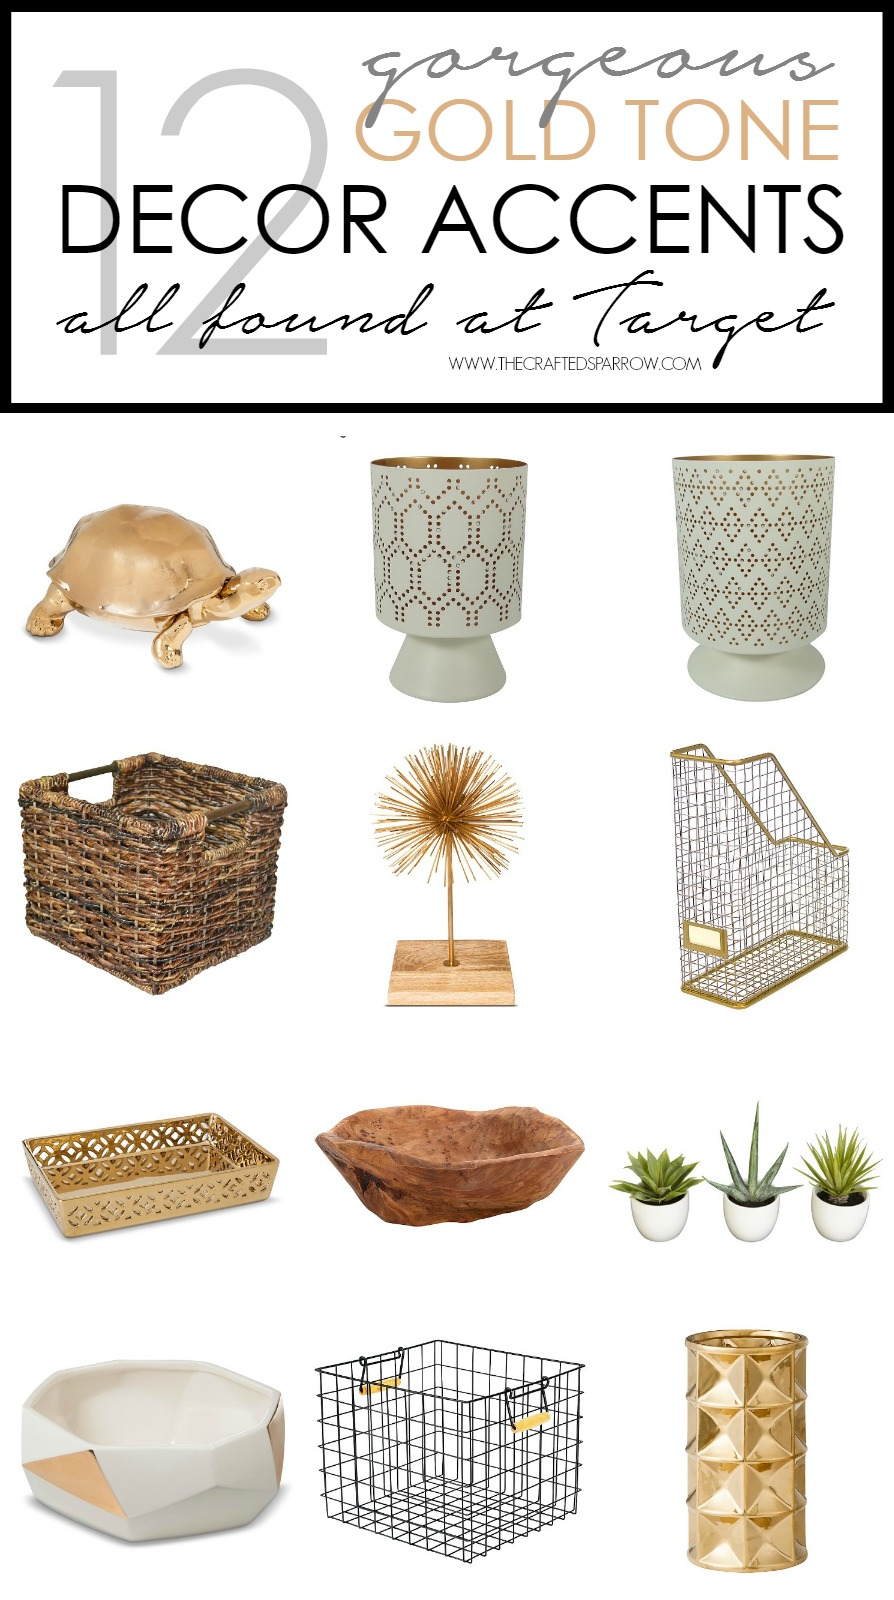 12 Gorgeous Gold Tone Decor Accents